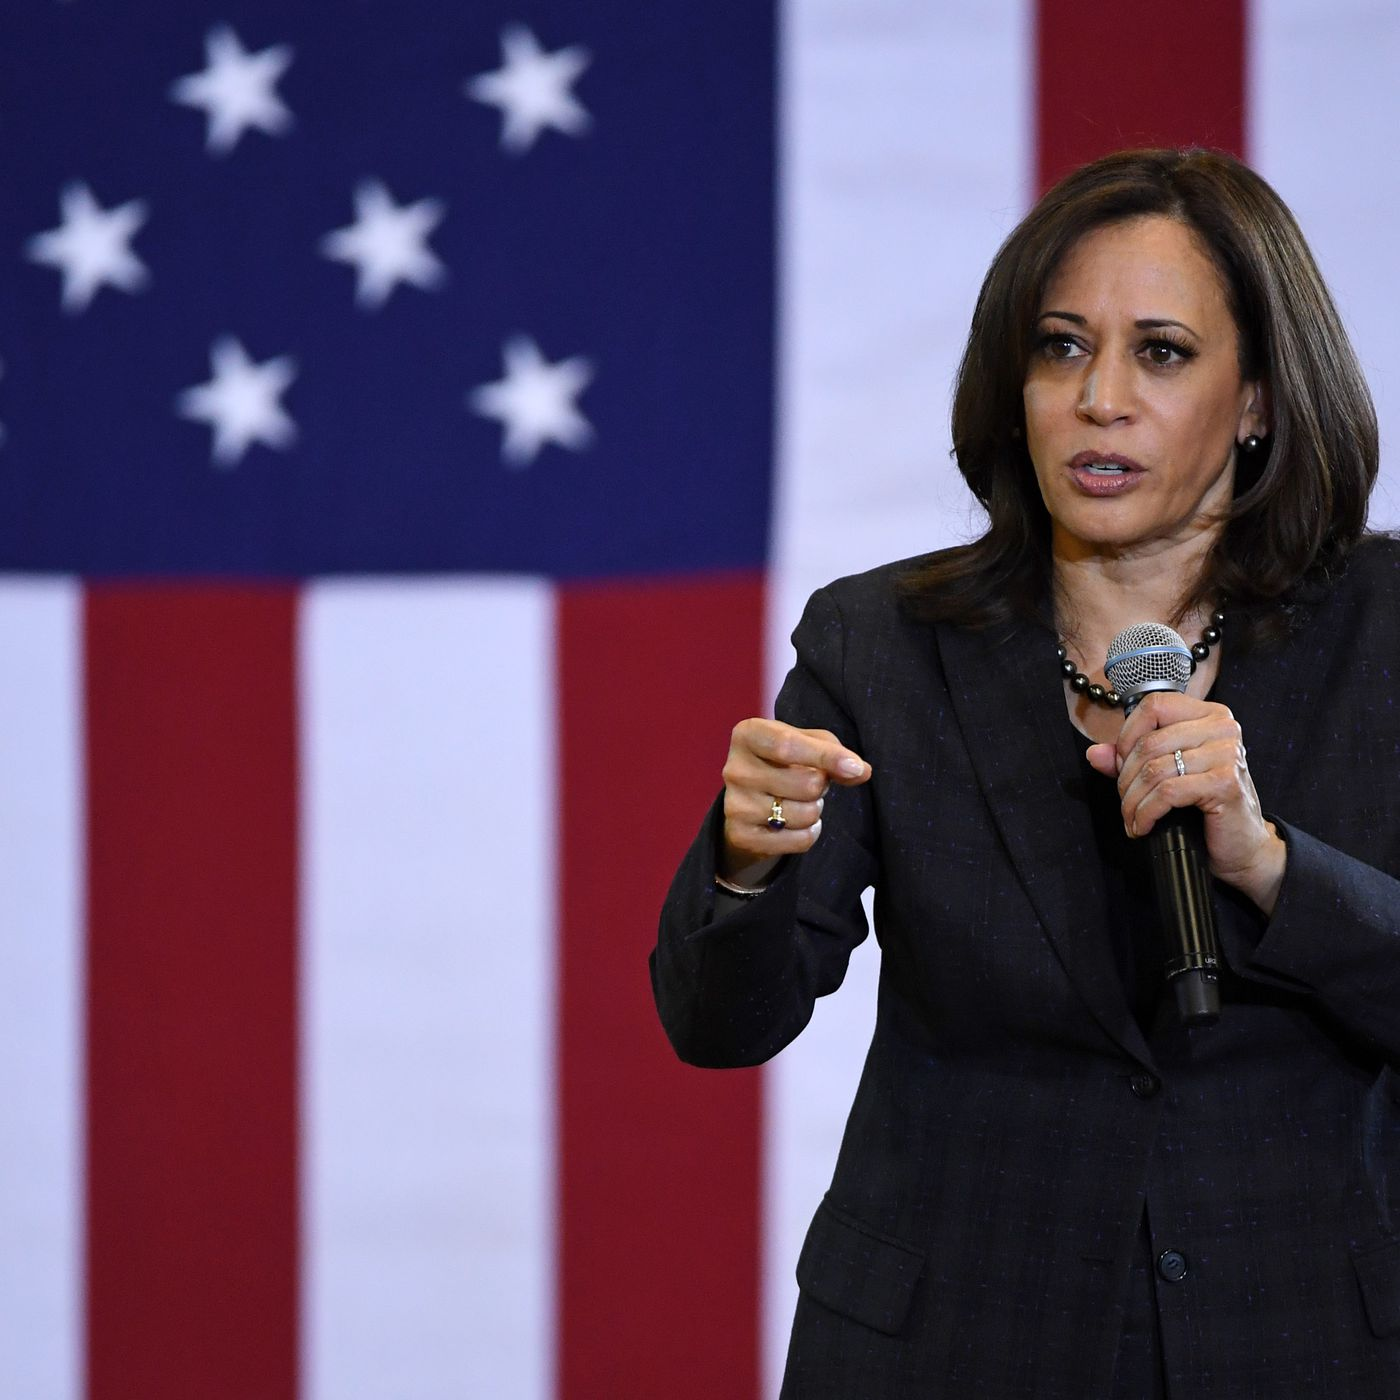 Kamala Harris Endorses Joe Biden Vox